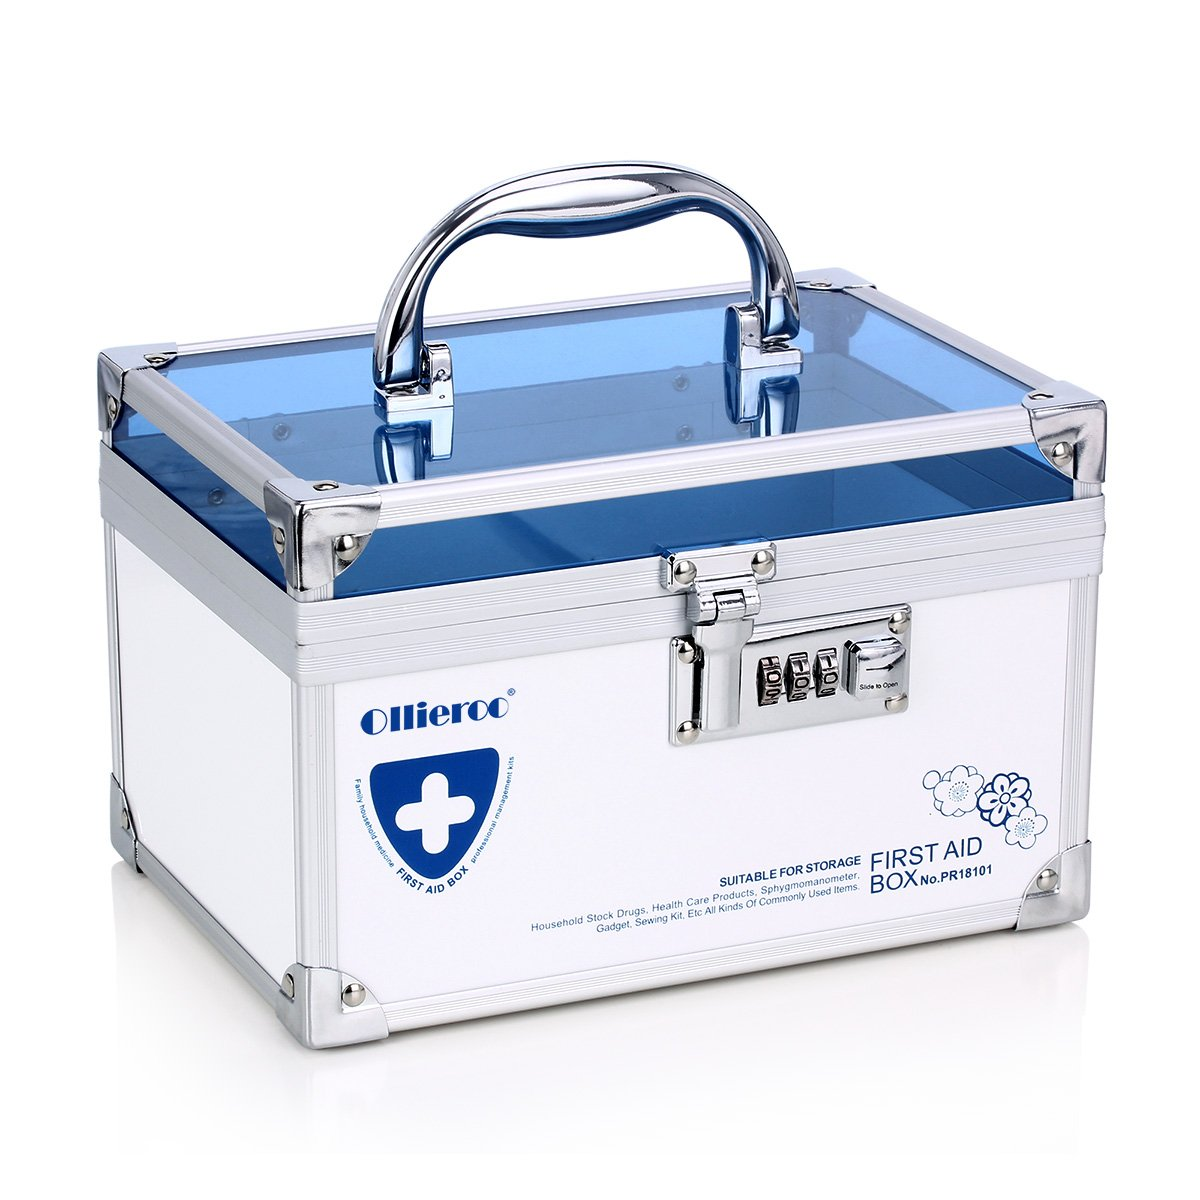 Baby Healthcare Kit Medical Care Set Portable Medicine Family Box Expenses First Aid Kit Medicine Box Child Baby Drug Storage Bringing More Convenience To The People In Their Daily Life Grooming & Healthcare Kits